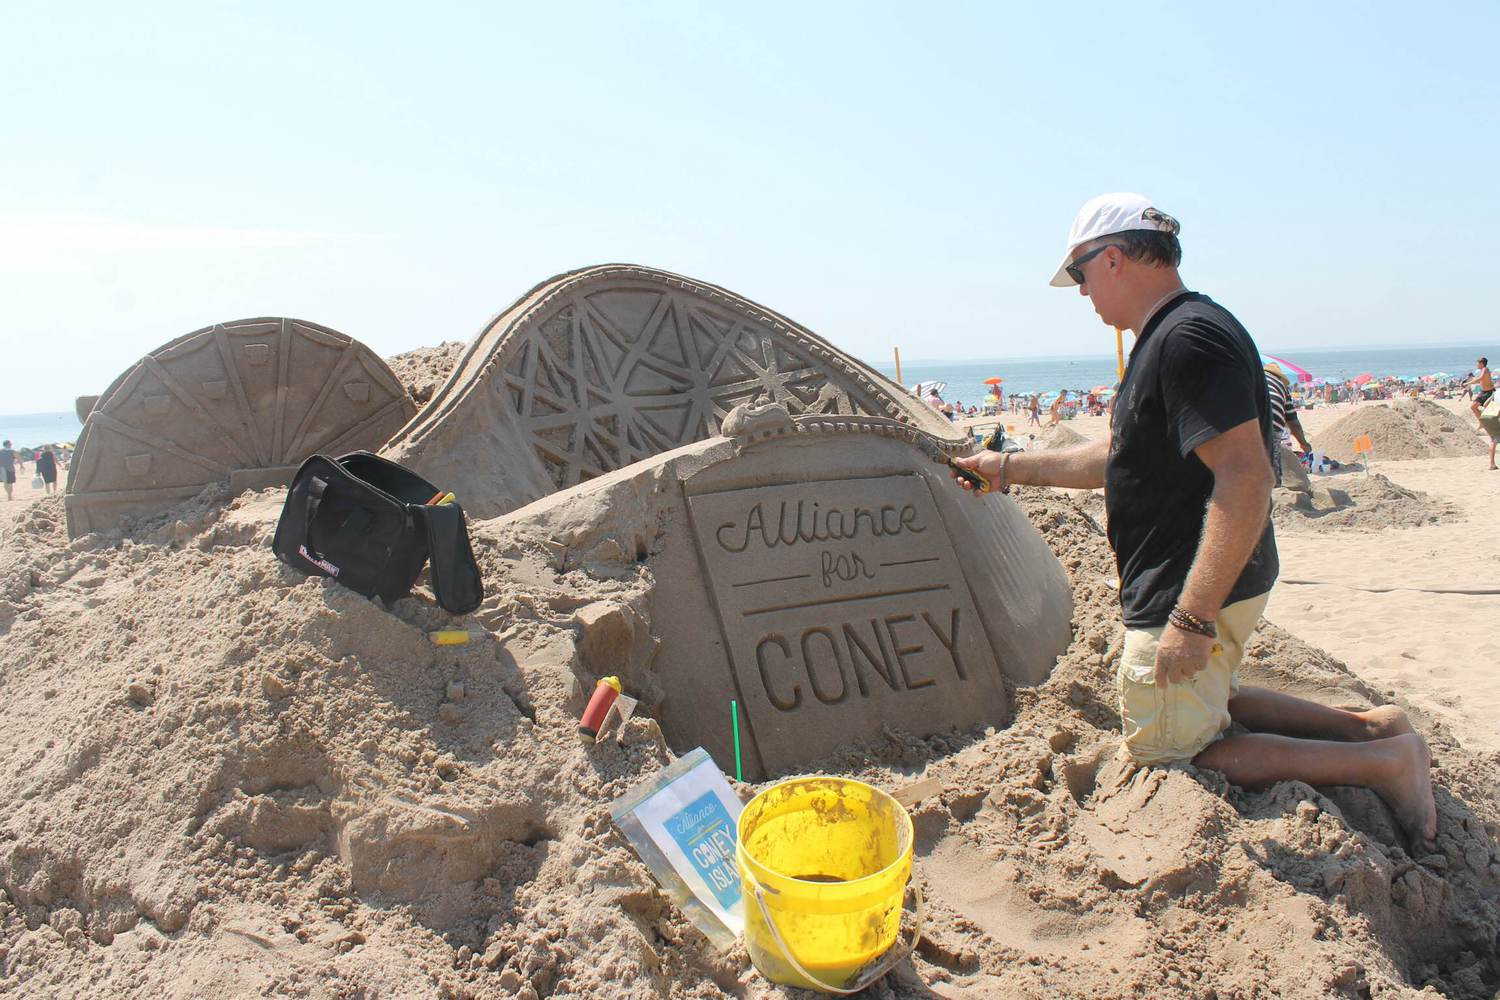 The Alliance for Coney Island, one of the contest's supporters, was represented on the beach.